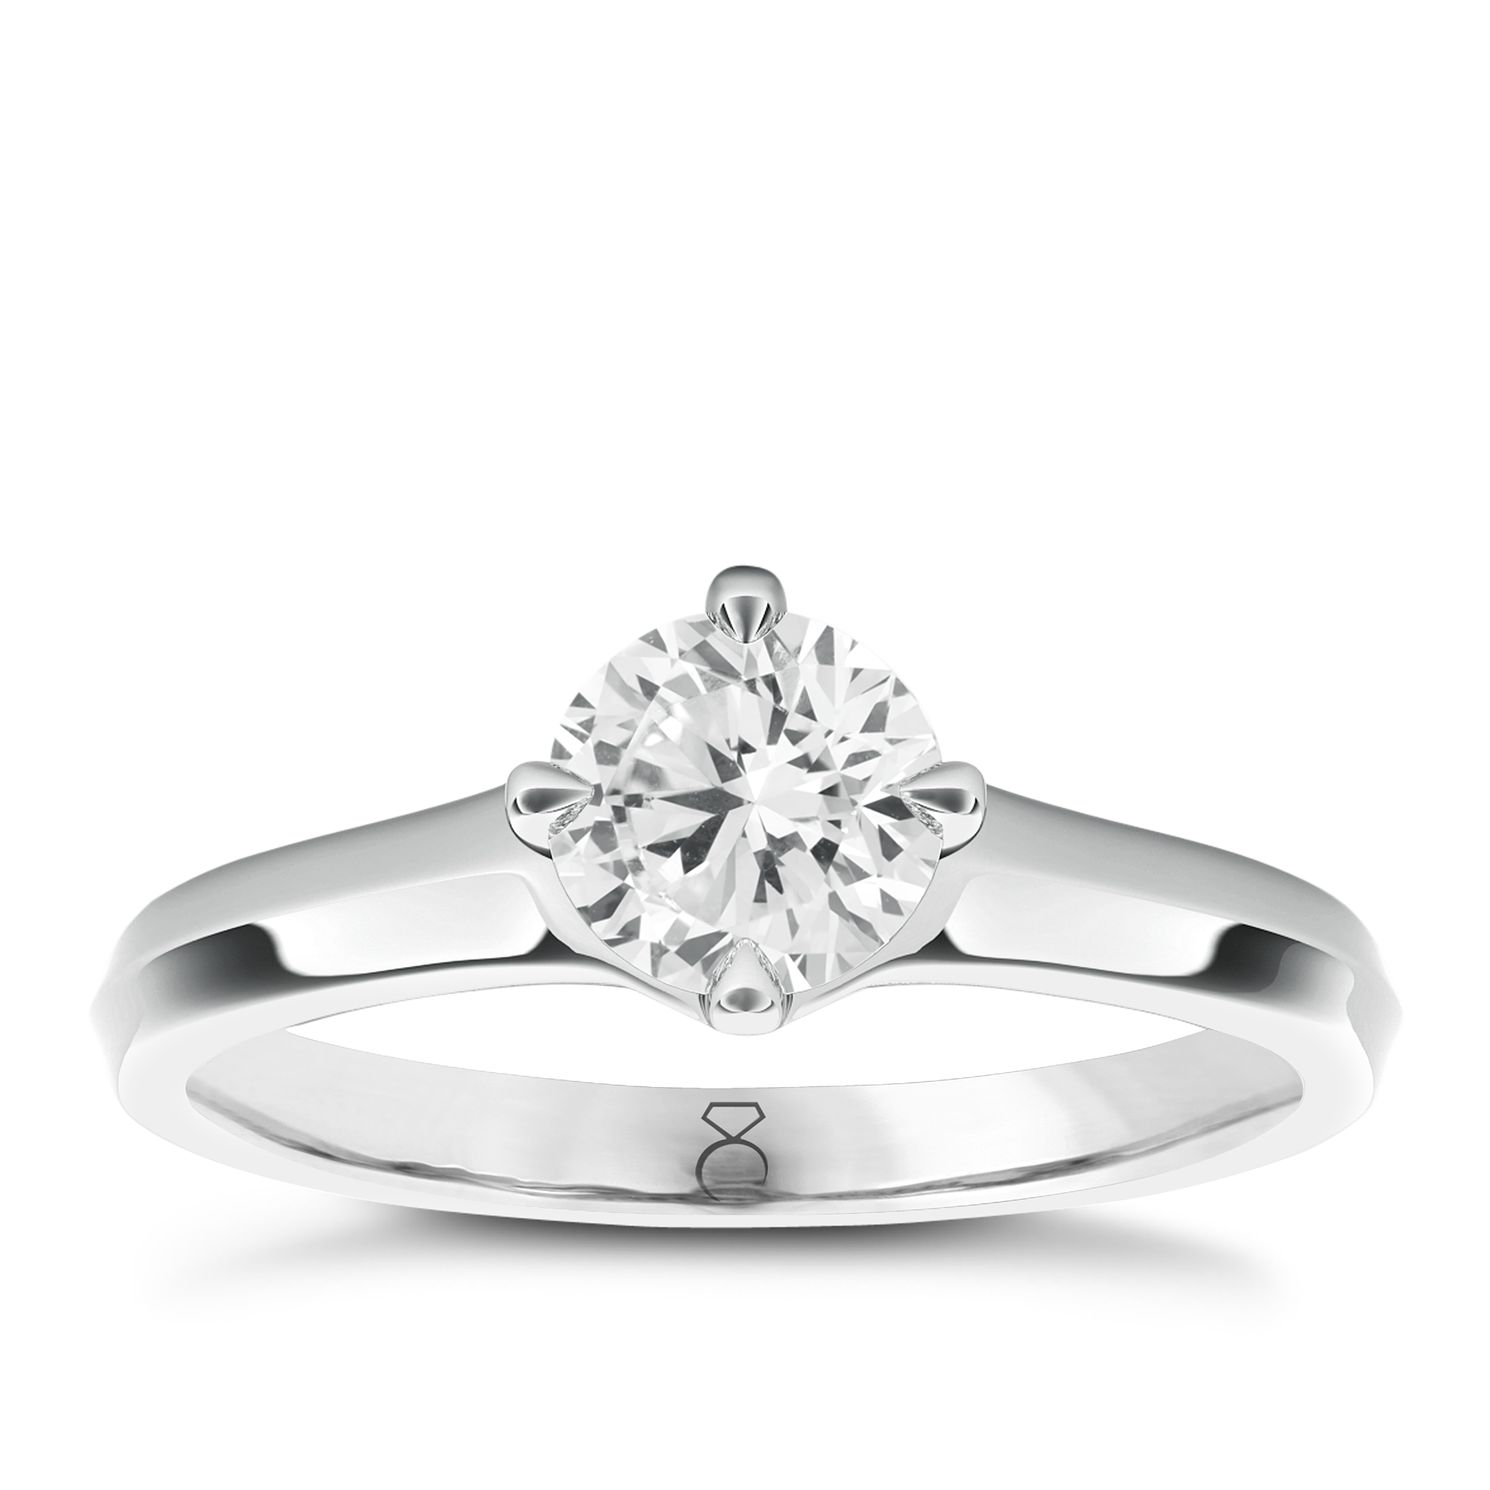 The Diamond Story 18ct White Gold 0.25ct Diamond Ring - Product number 5417643